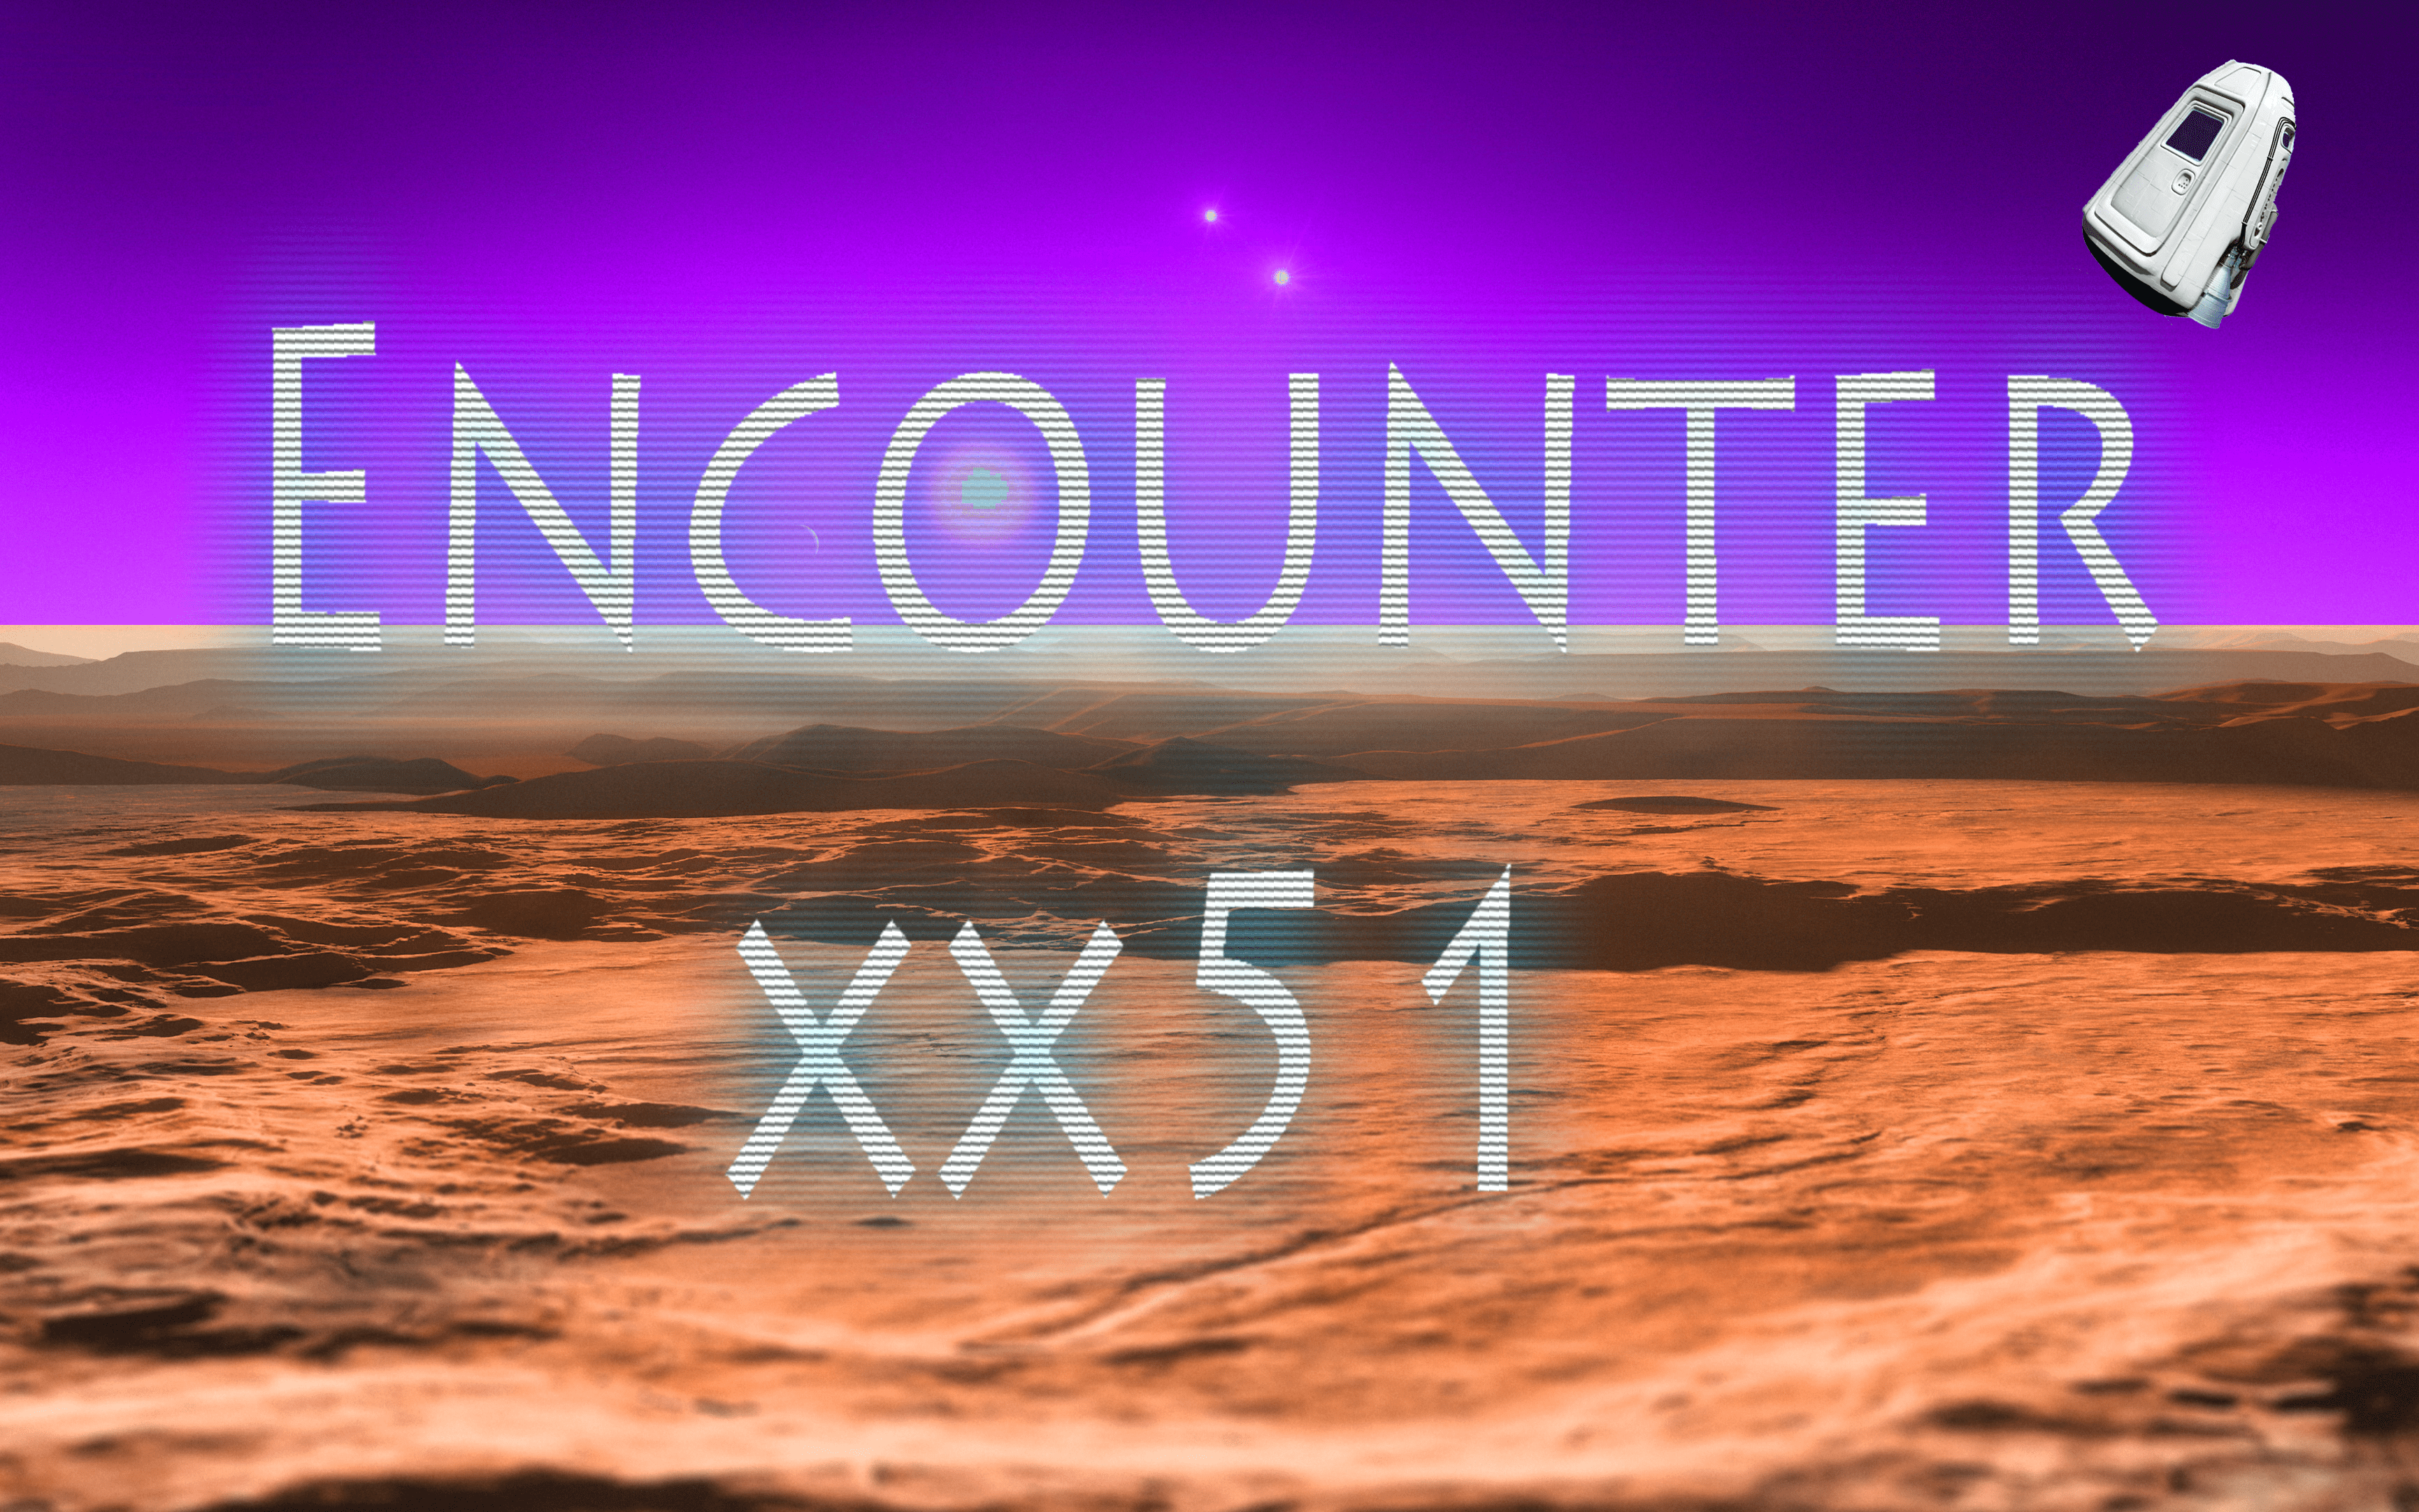 Space Encounter XX51